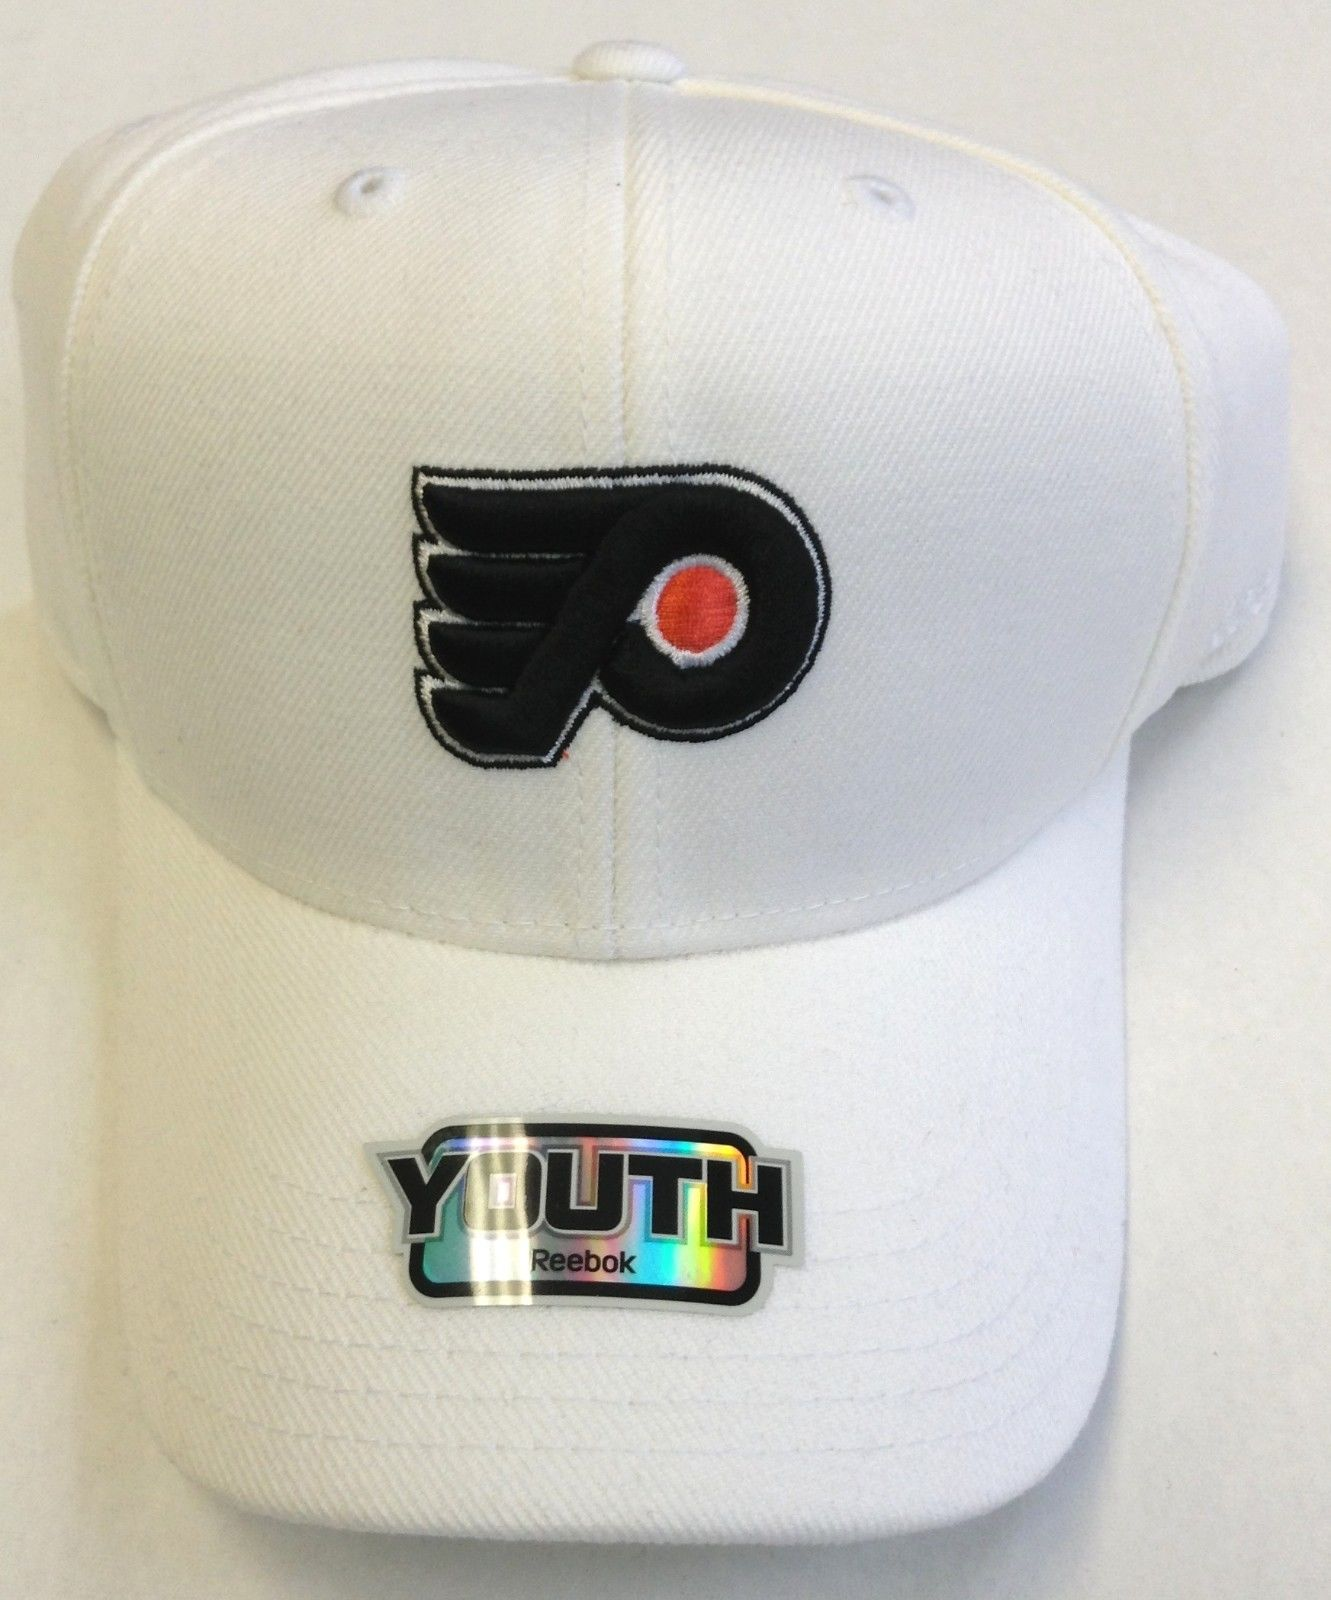 8332308e974  9.99 - Nhl Philadelphia Flyers Reebok Cap Youth Velcro-Back Adjustable  Structured Hat  ebay